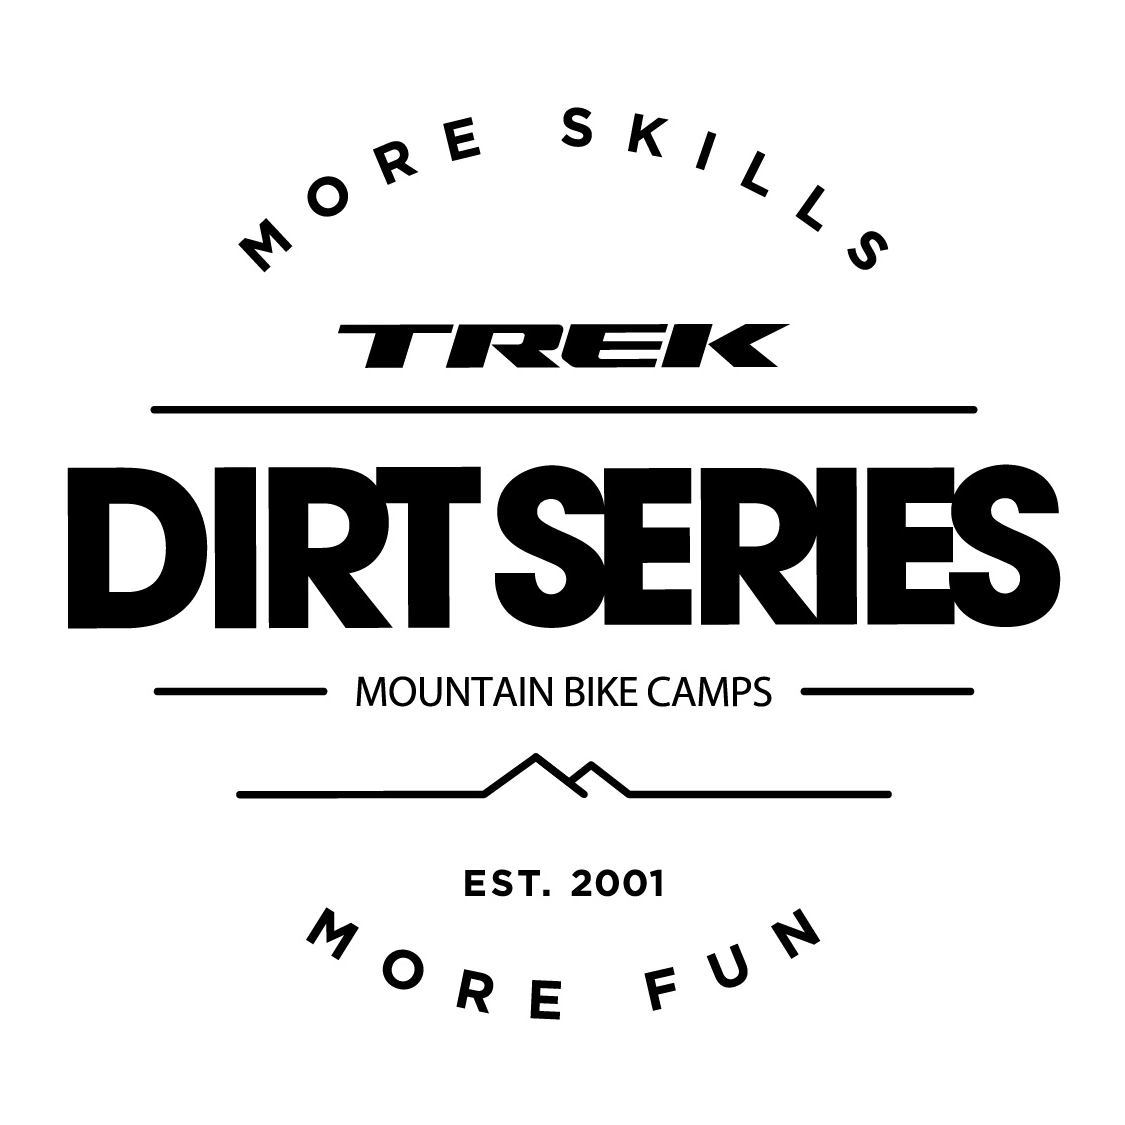 Dirt Series Mountain Bike Camp - Moab, UT